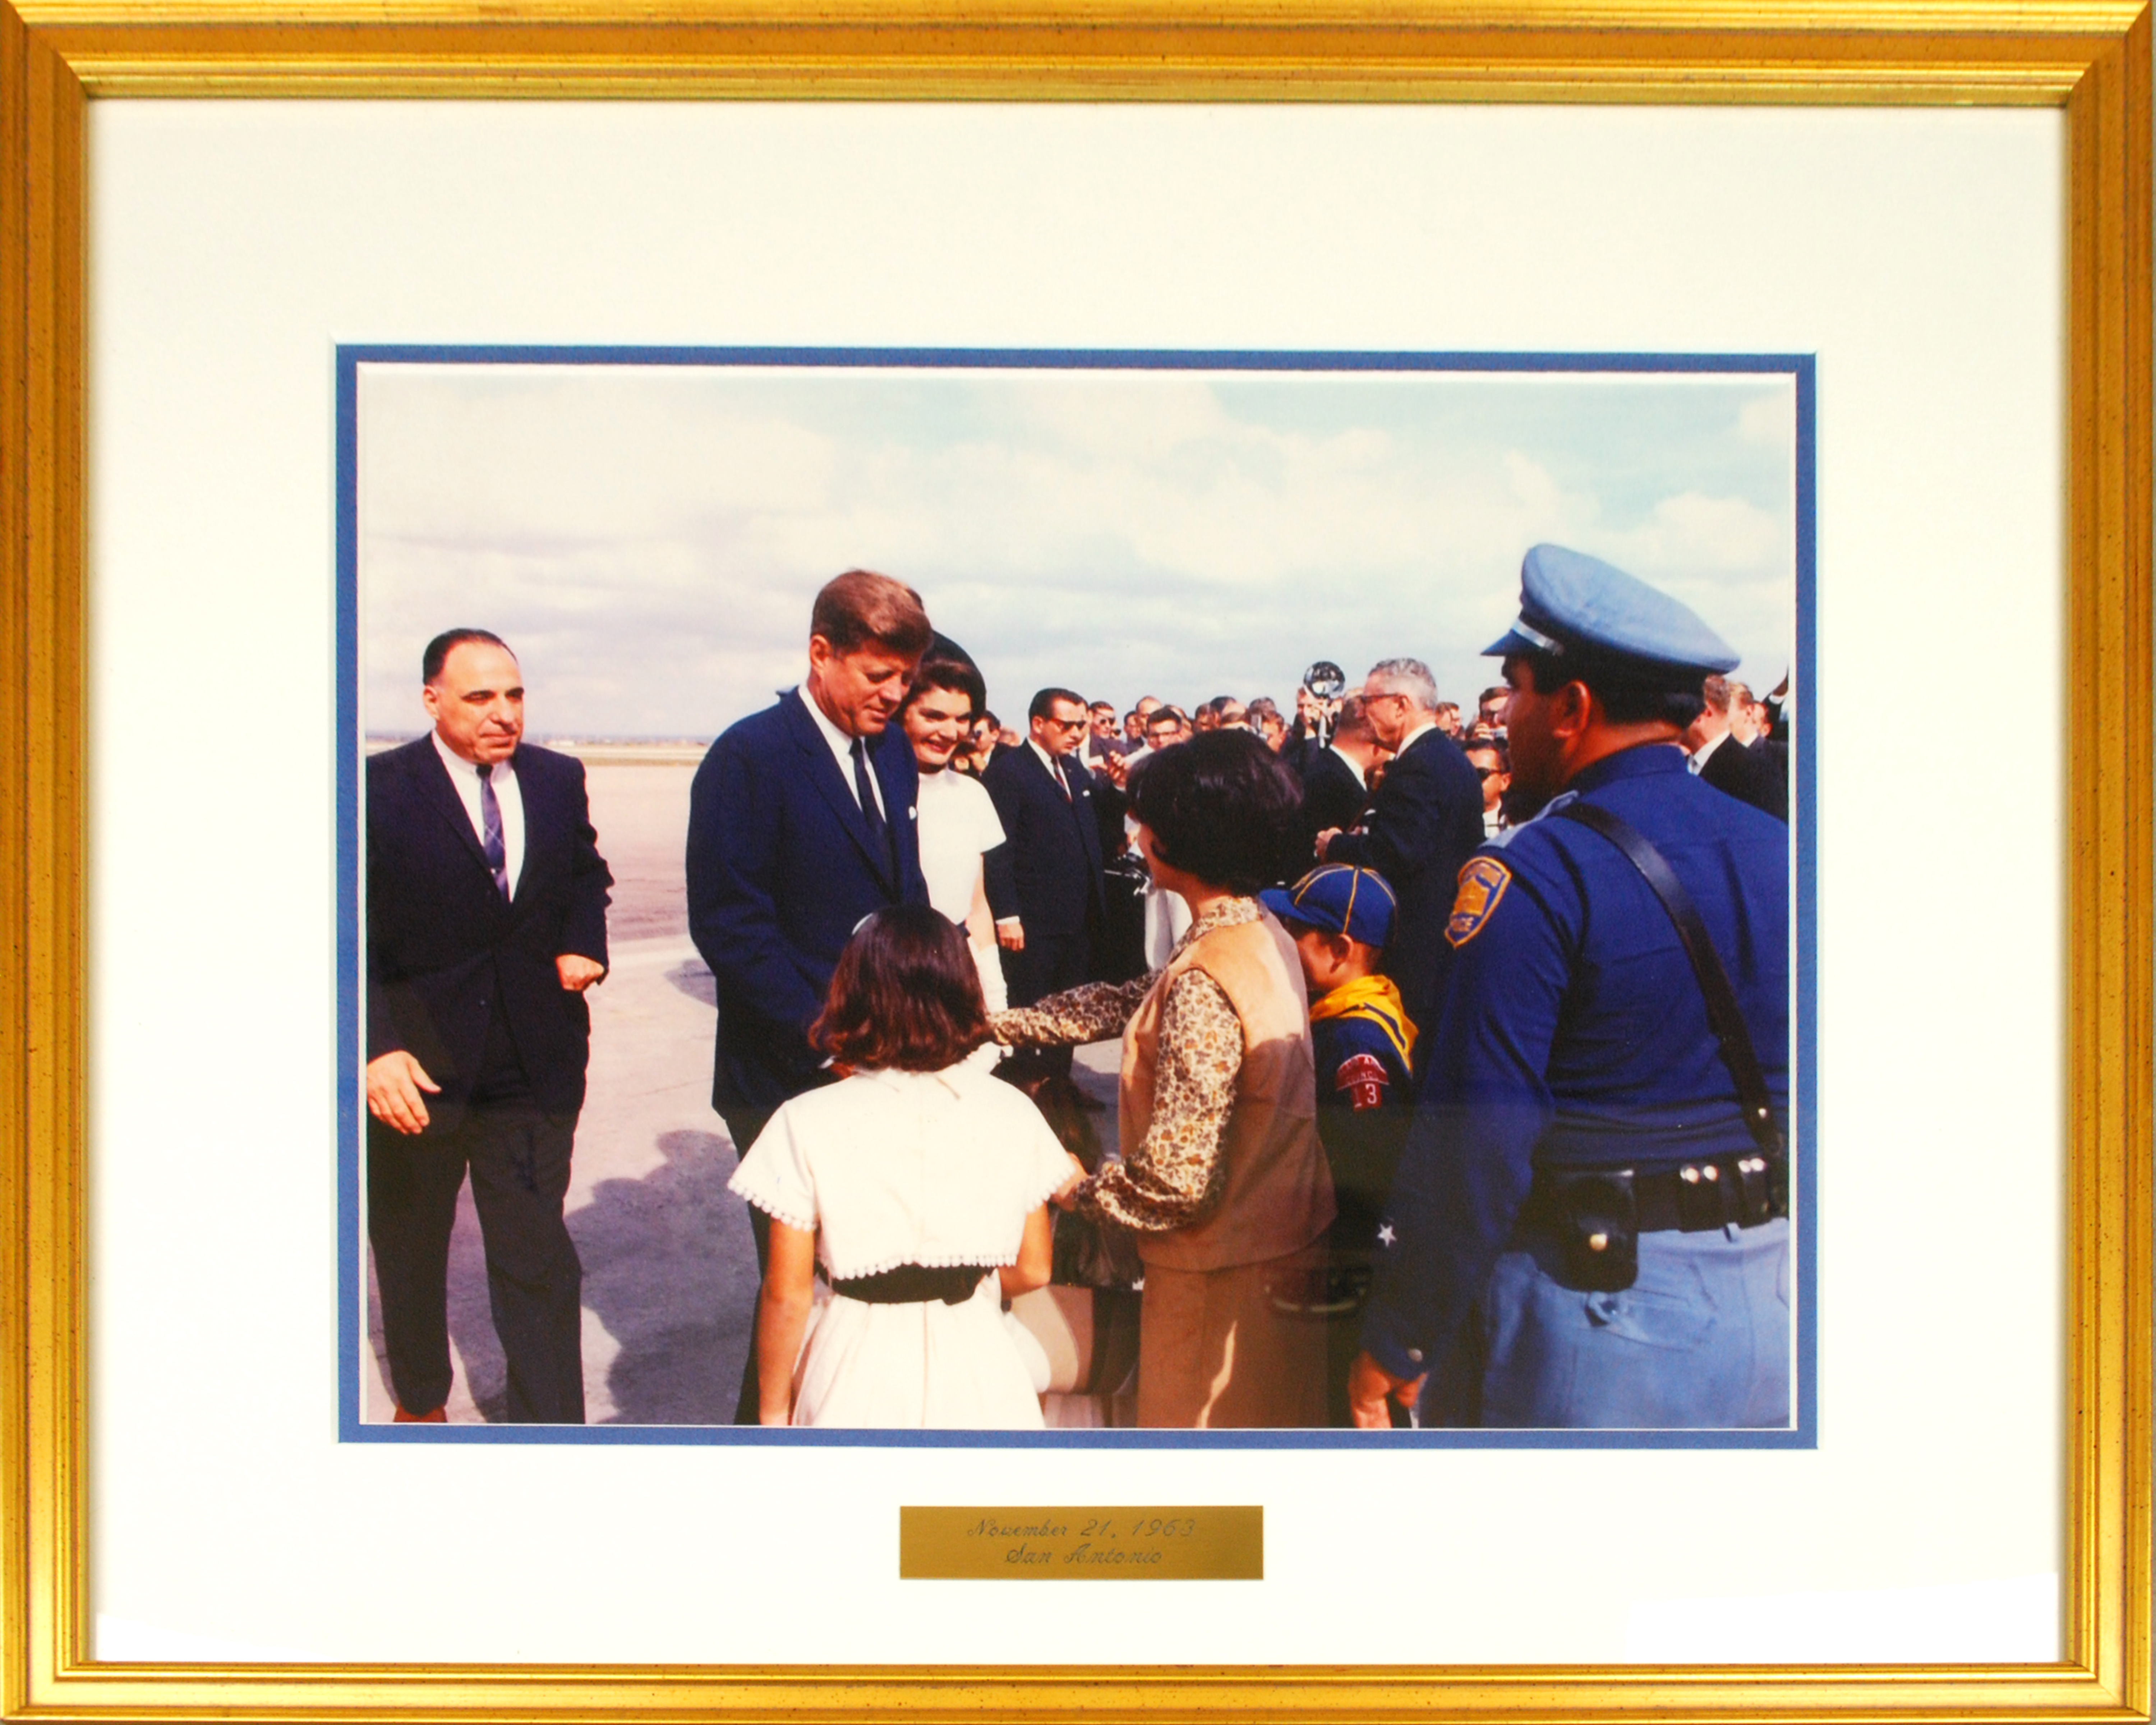 Object: Photograph (photograph of President John F. Kennedy and Jackie Kennedy) | UTSA Institute Of Texan Cultures